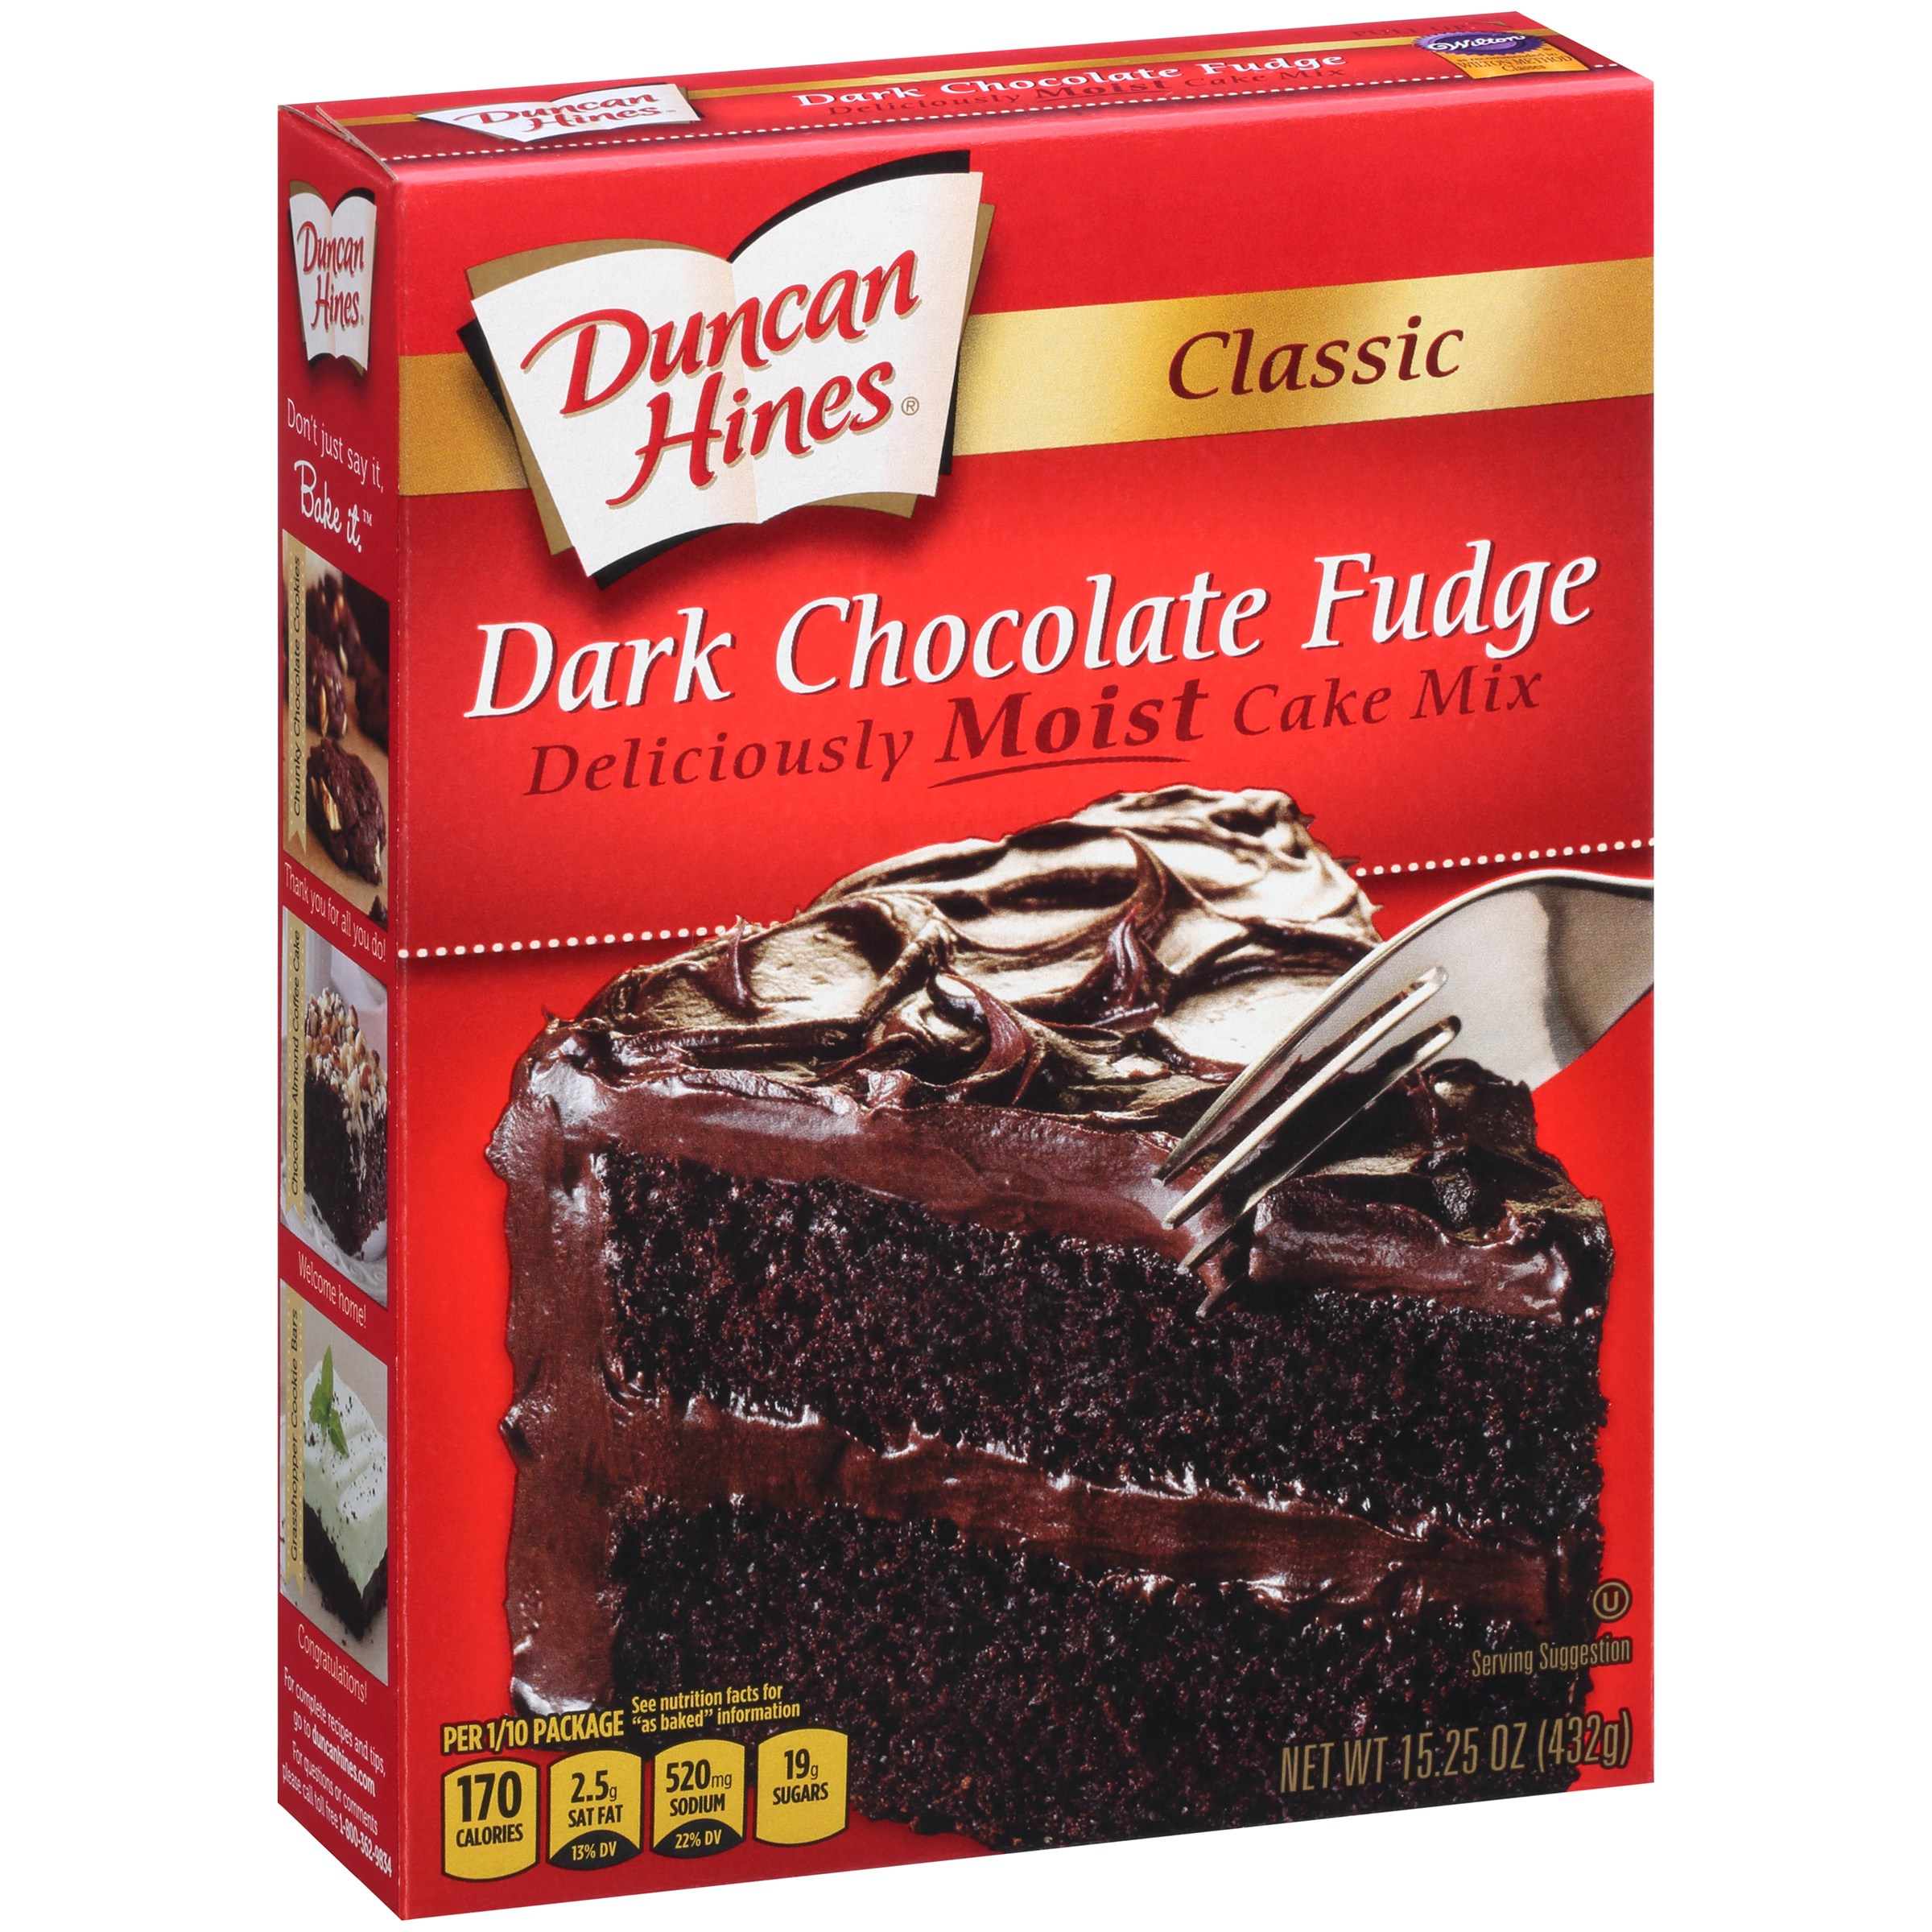 (12 Pack) Duncan Hines Classic Dark Chocolate Fudge Cake Mix 15.25 oz